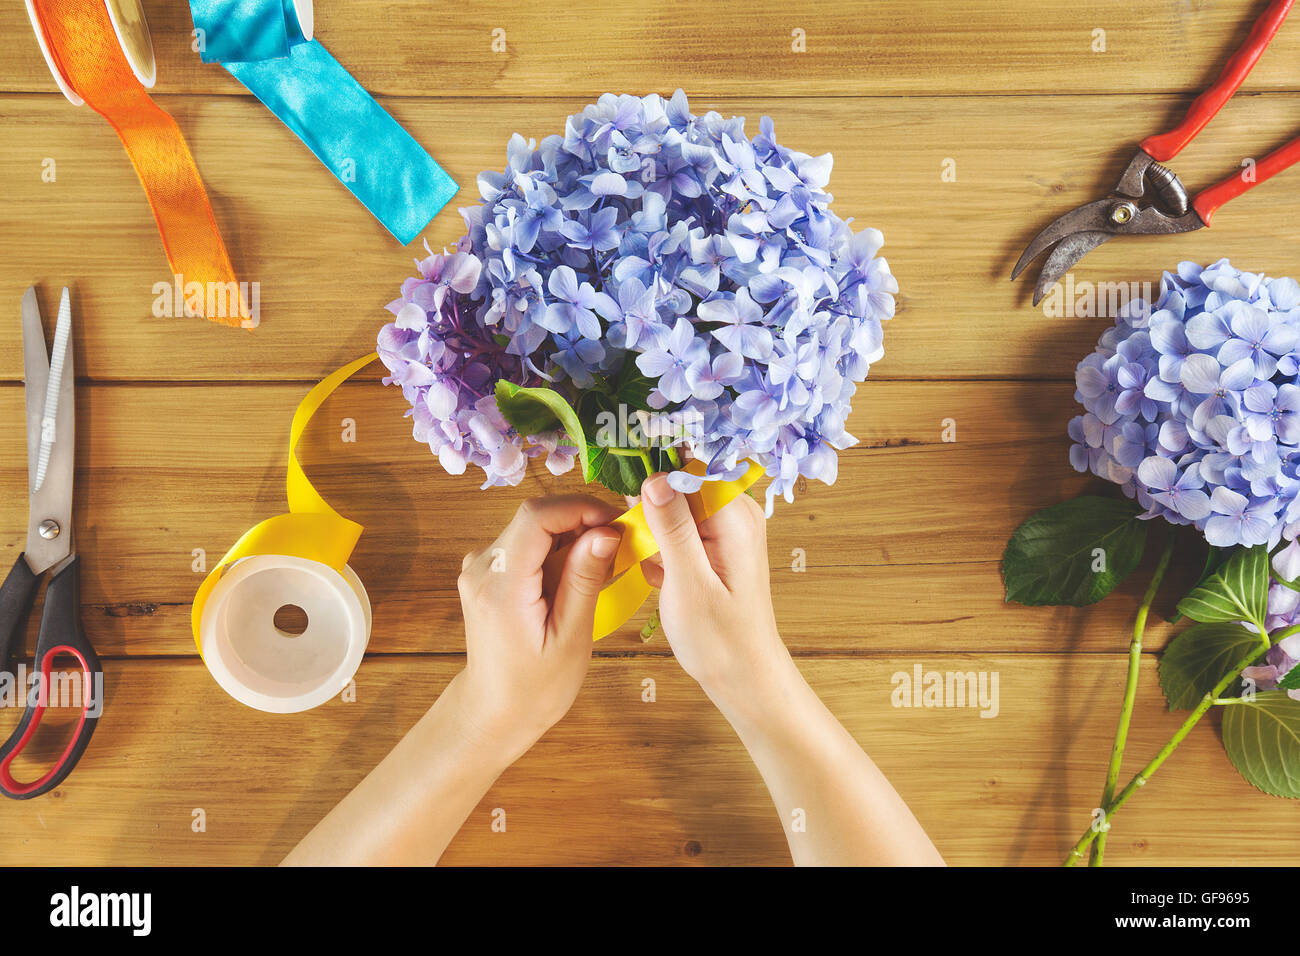 overhead of florist woman at work - Stock Image